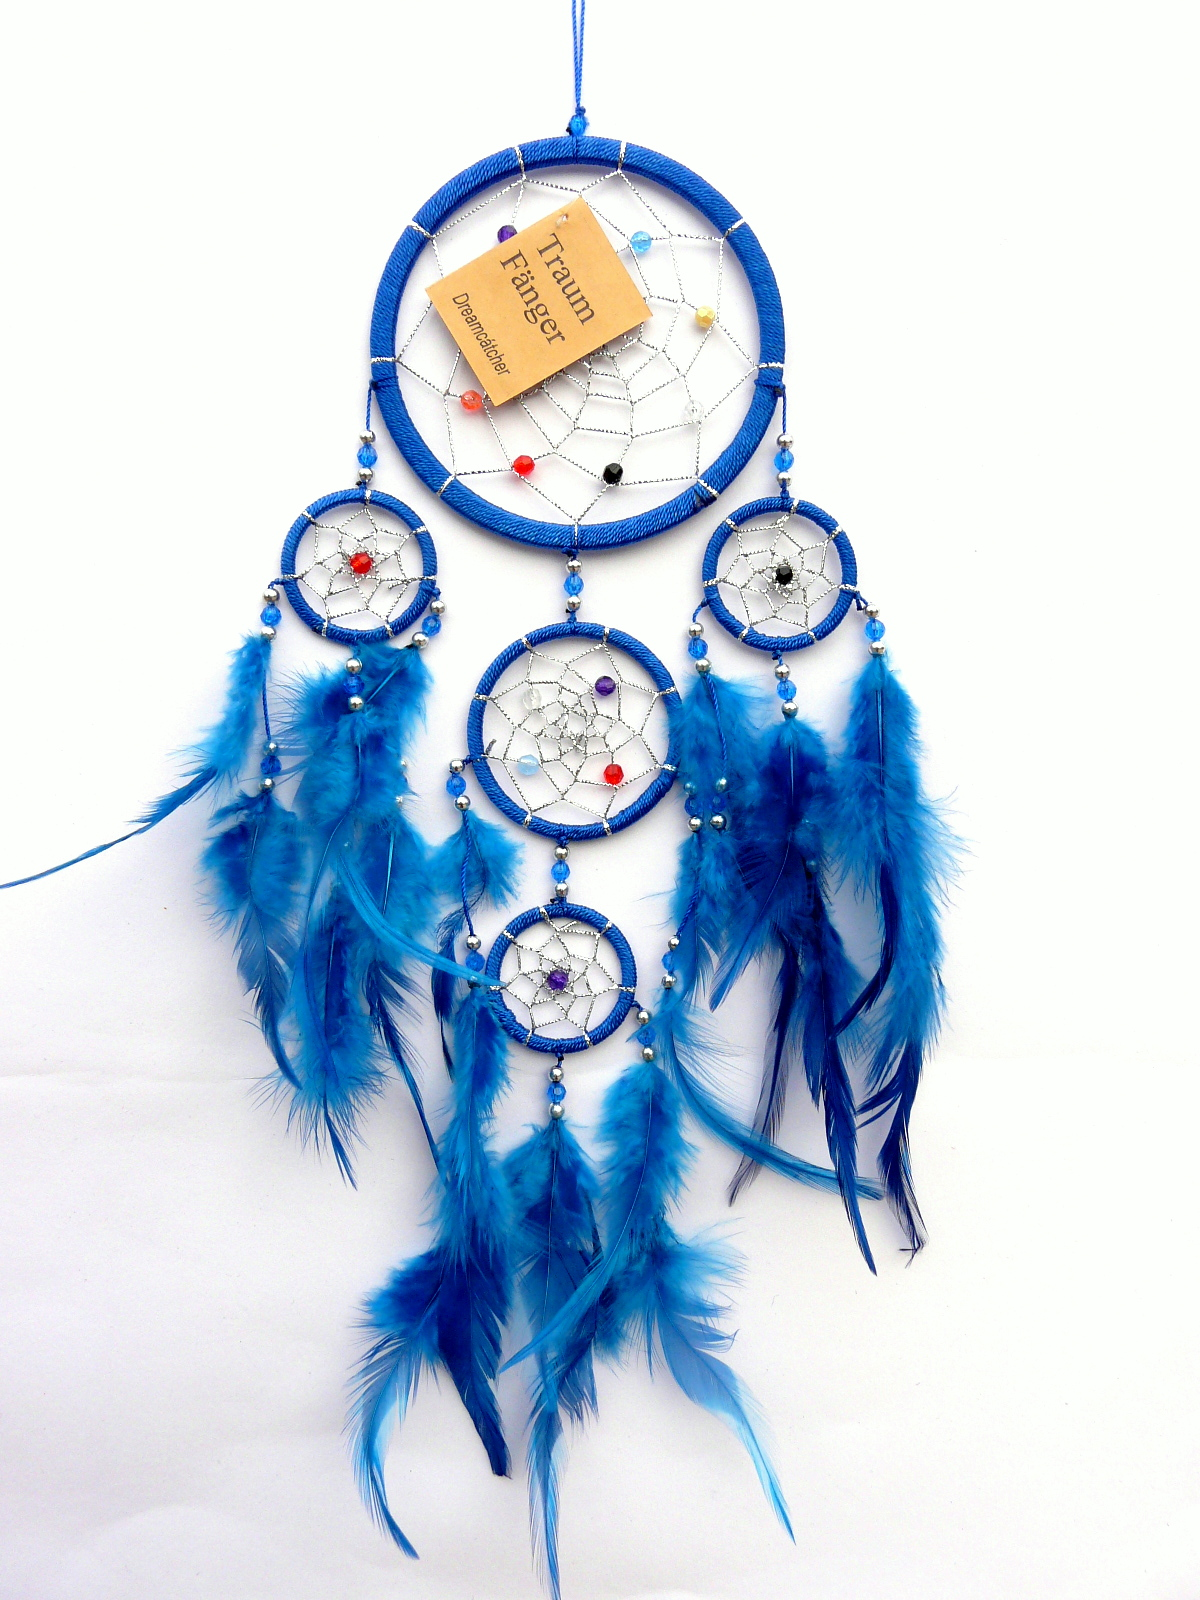 traumf nger dreamcatcher indianer amulett schwarz blau lila t rkis wei rosa neu ebay. Black Bedroom Furniture Sets. Home Design Ideas